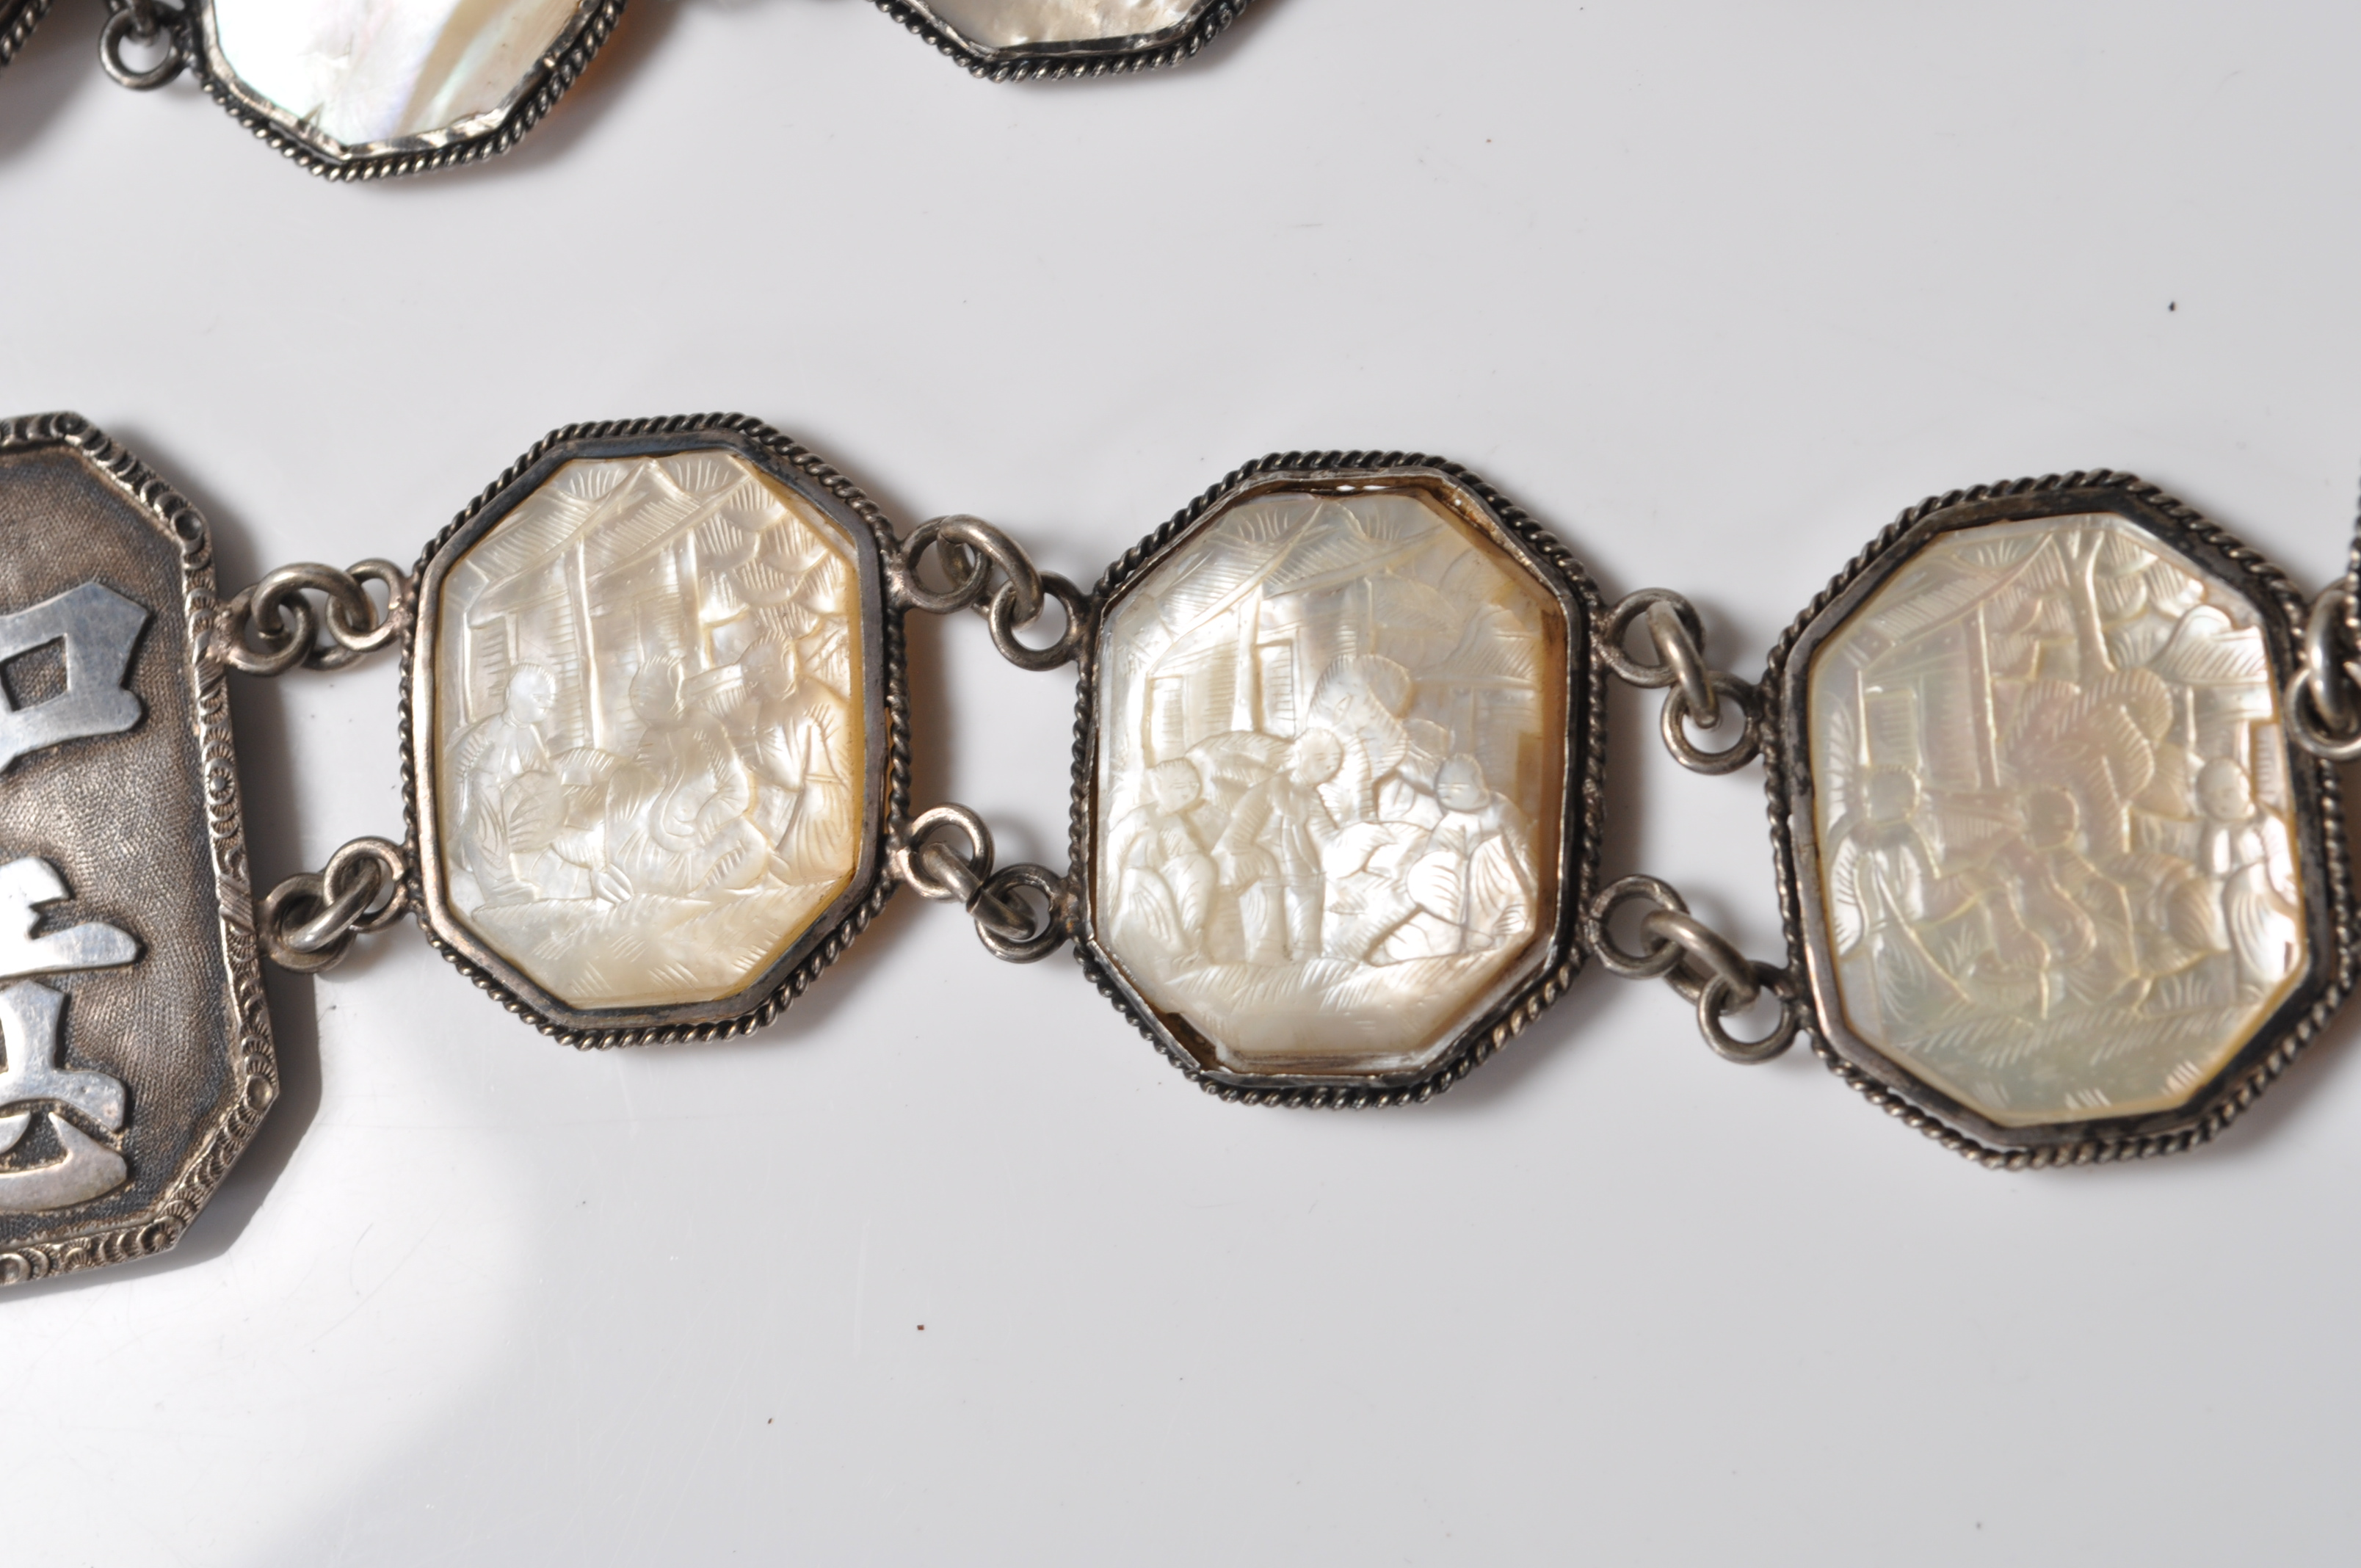 ANTIQUE CHINESE SILVER AND MOTHER OF PEARL BELT - Image 4 of 7